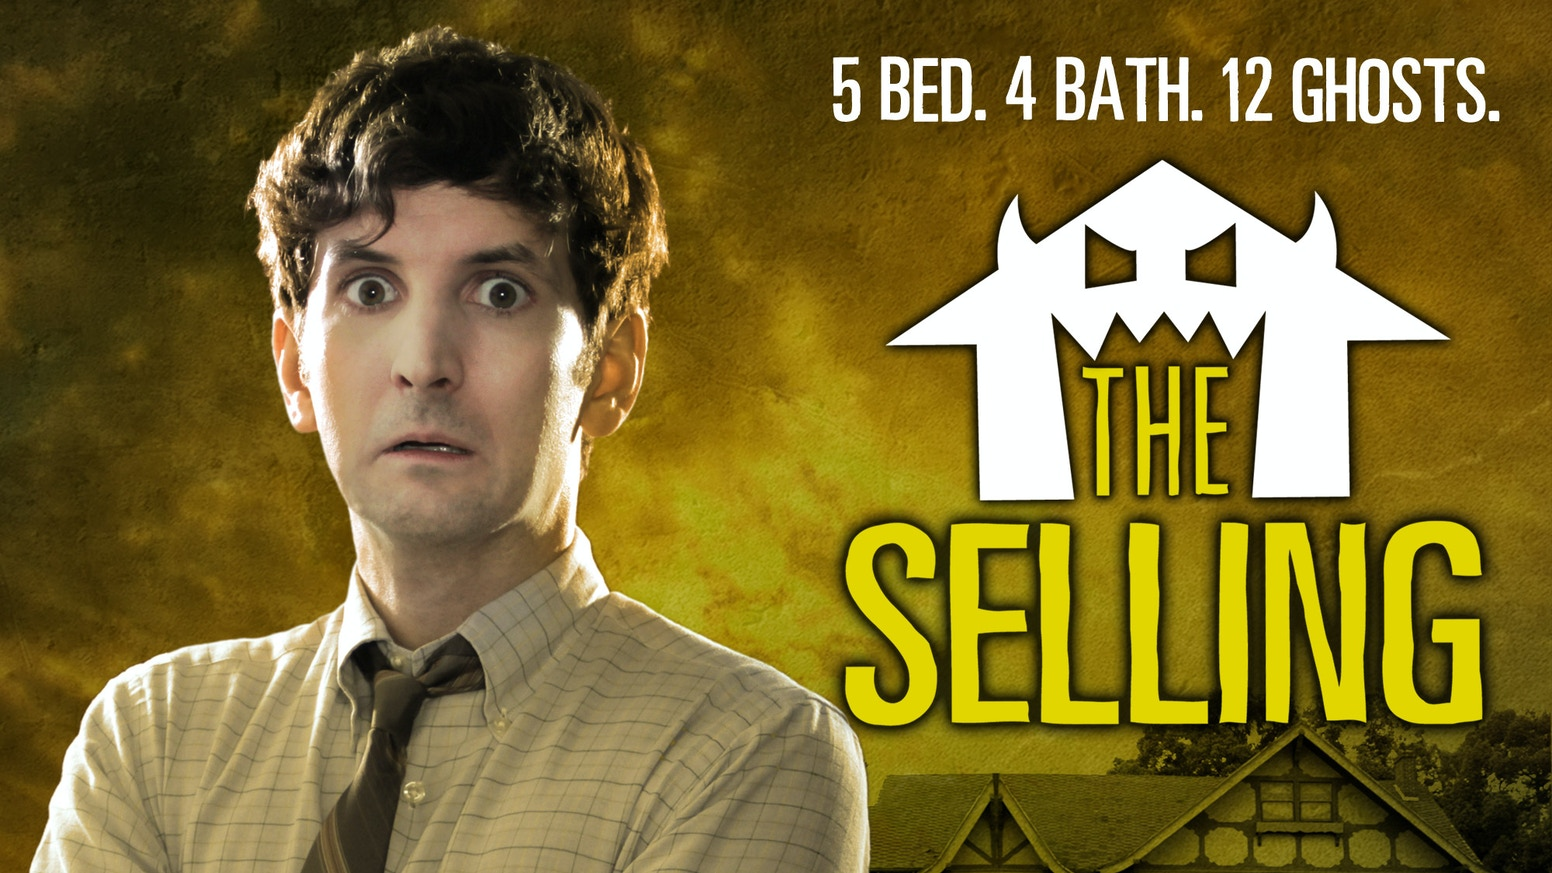 We raised funds for a limited theatrical release of our comedy about a real estate agent trying to sell a haunted house.